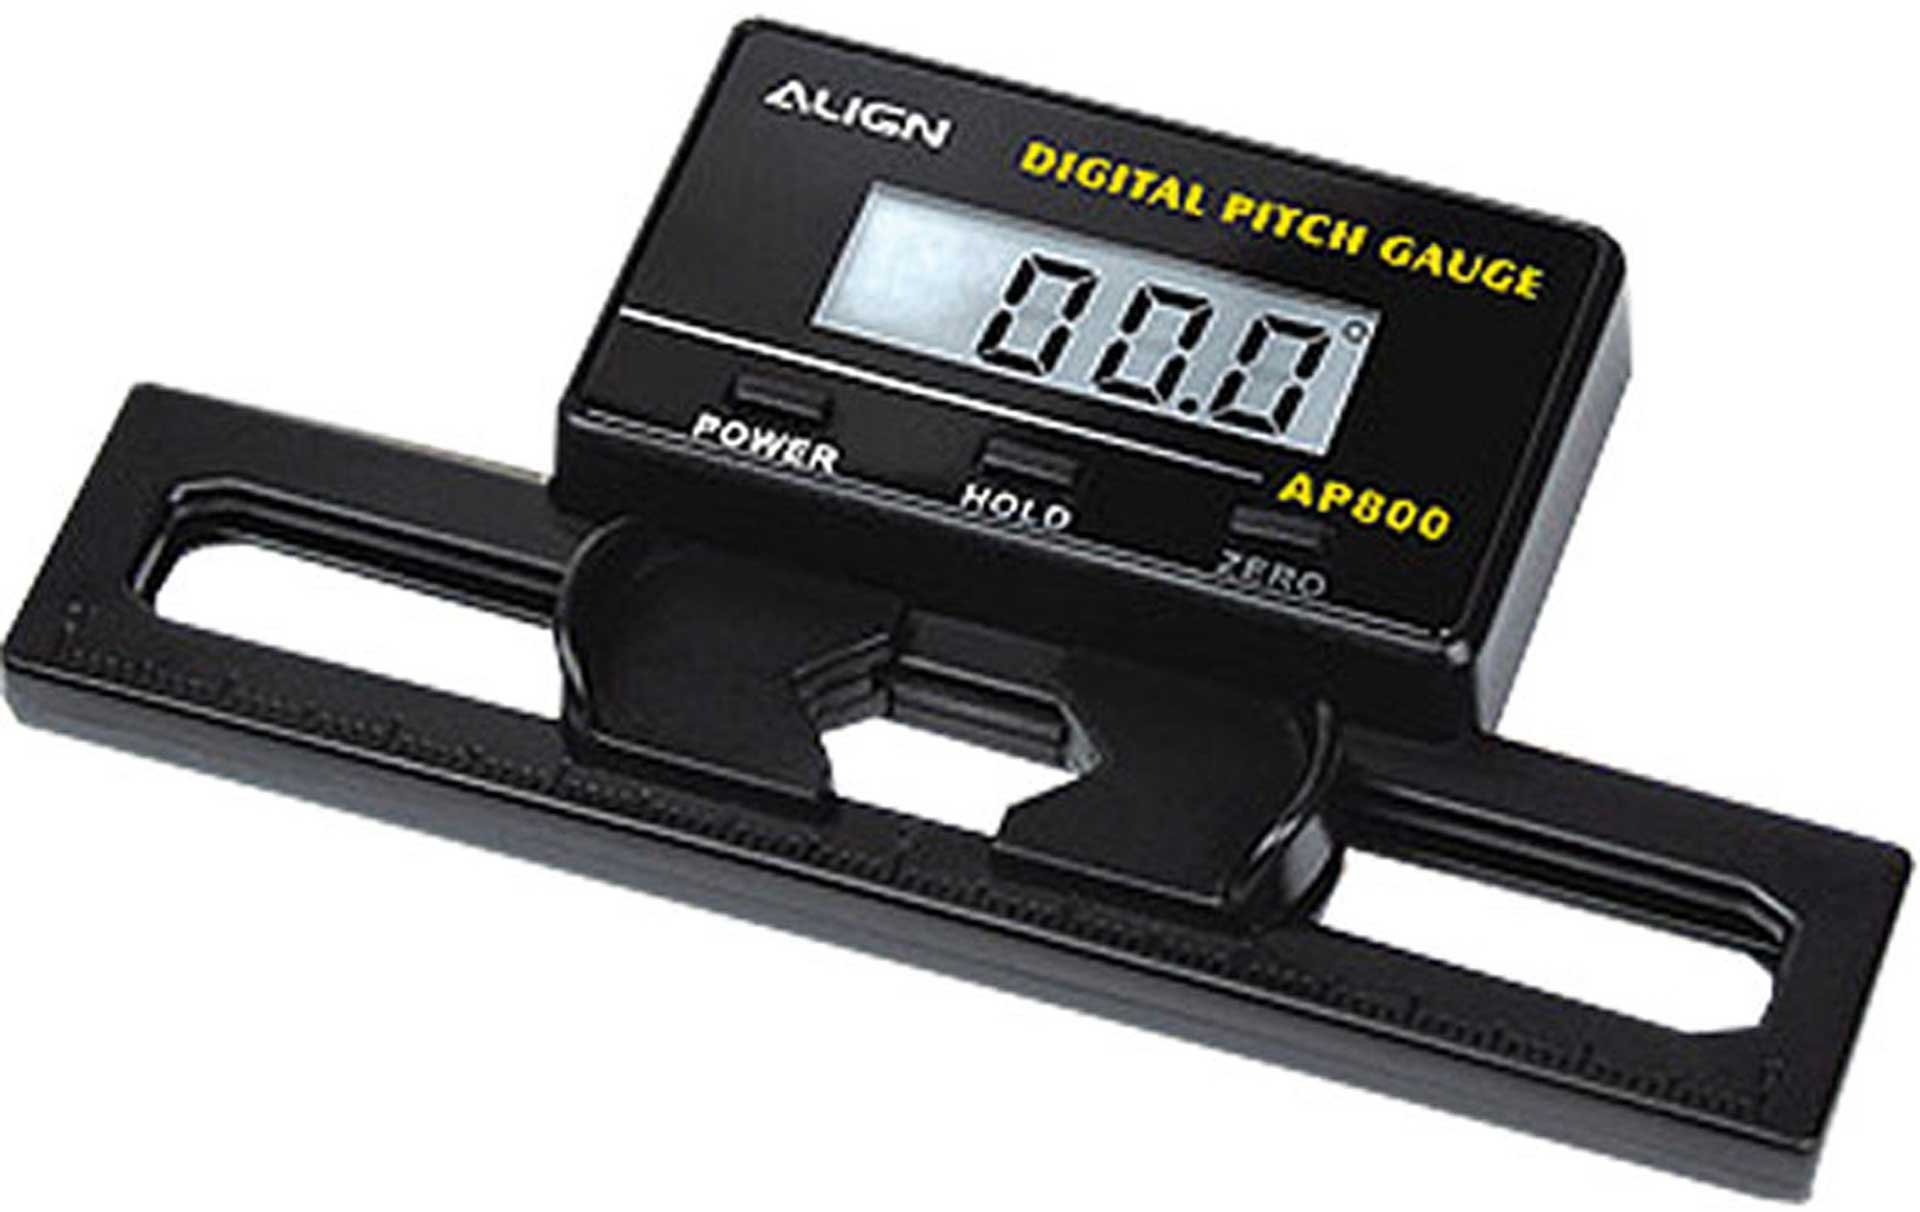 ALIGN AP800 Digitale Pitchlehre